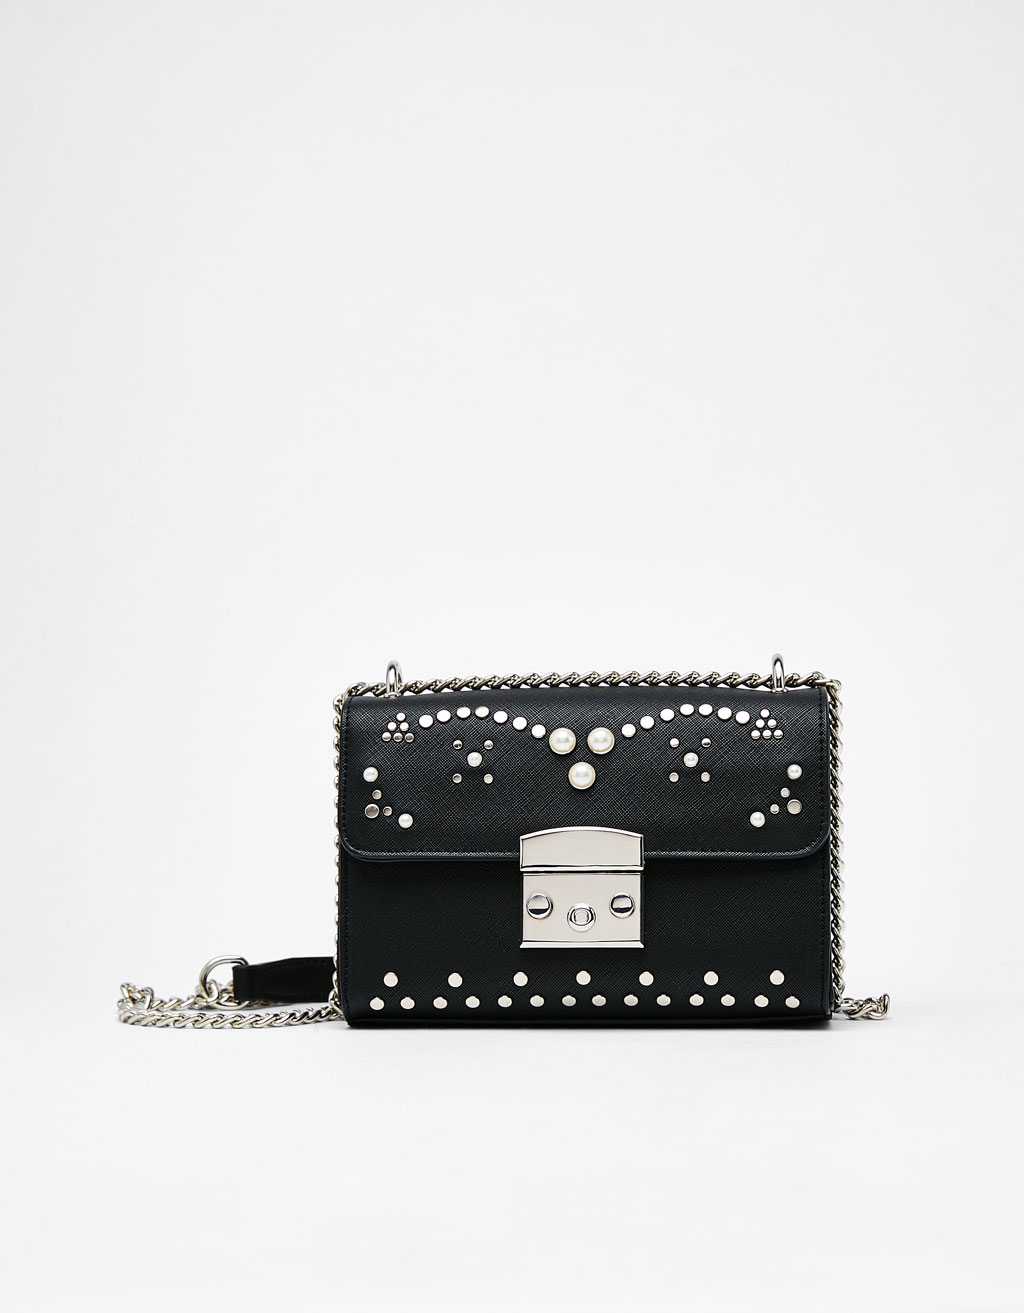 Saffiano handbag embellished with faux pearls